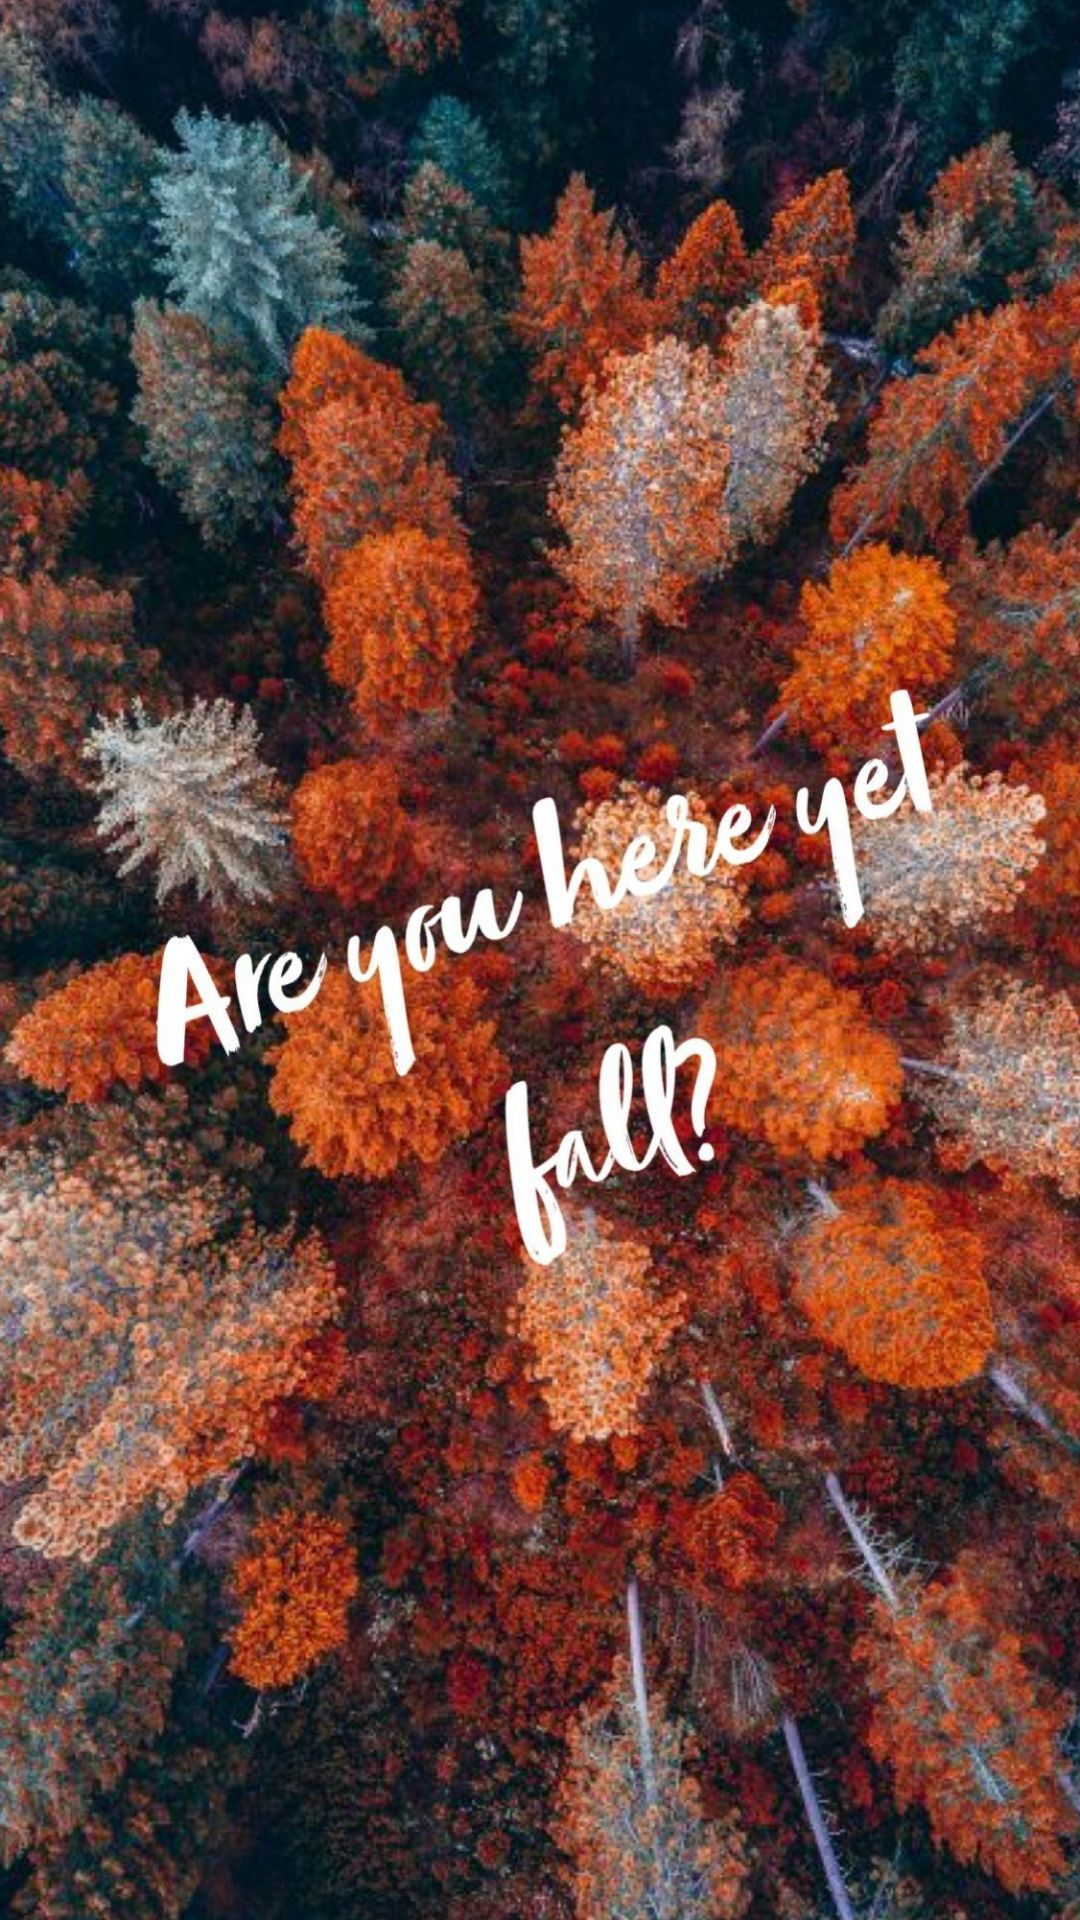 Hello Autumn Aesthetic HD Wallpapers (Desktop Background / Android / iPhone) (1080p, 4k) (38766) - 3D / Abstract